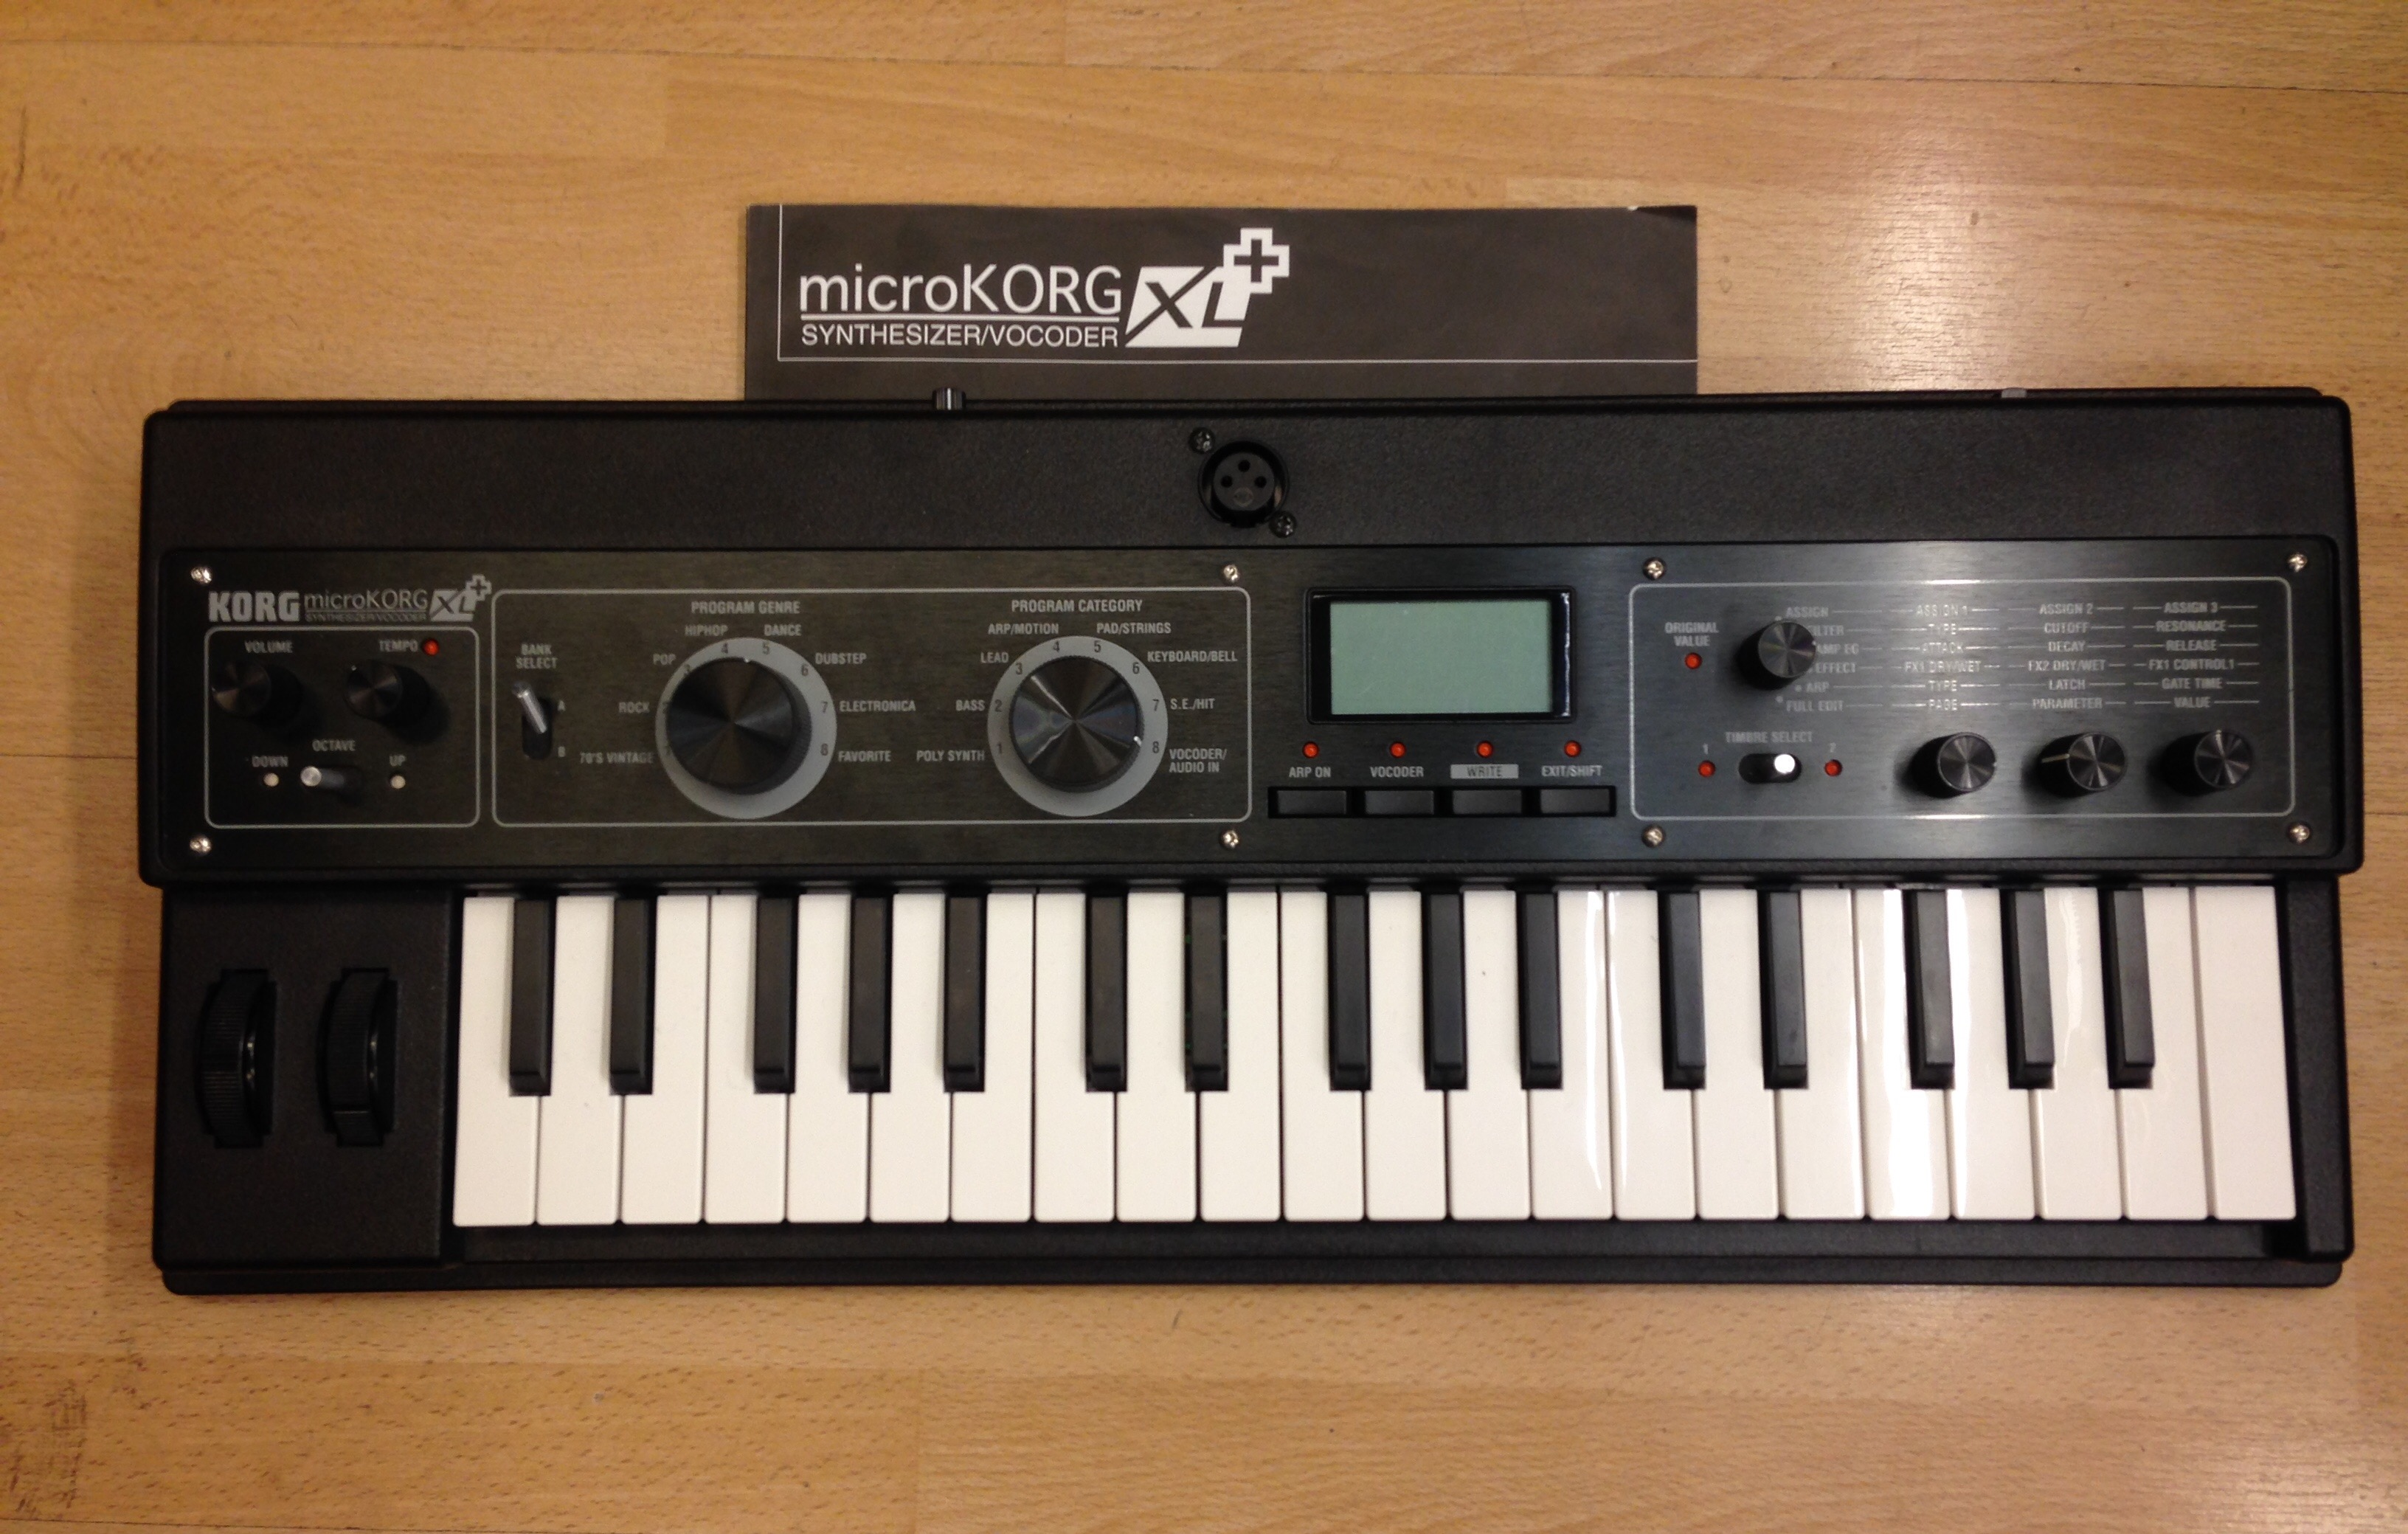 korg microkorg xl plus for sale at x electrical. Black Bedroom Furniture Sets. Home Design Ideas